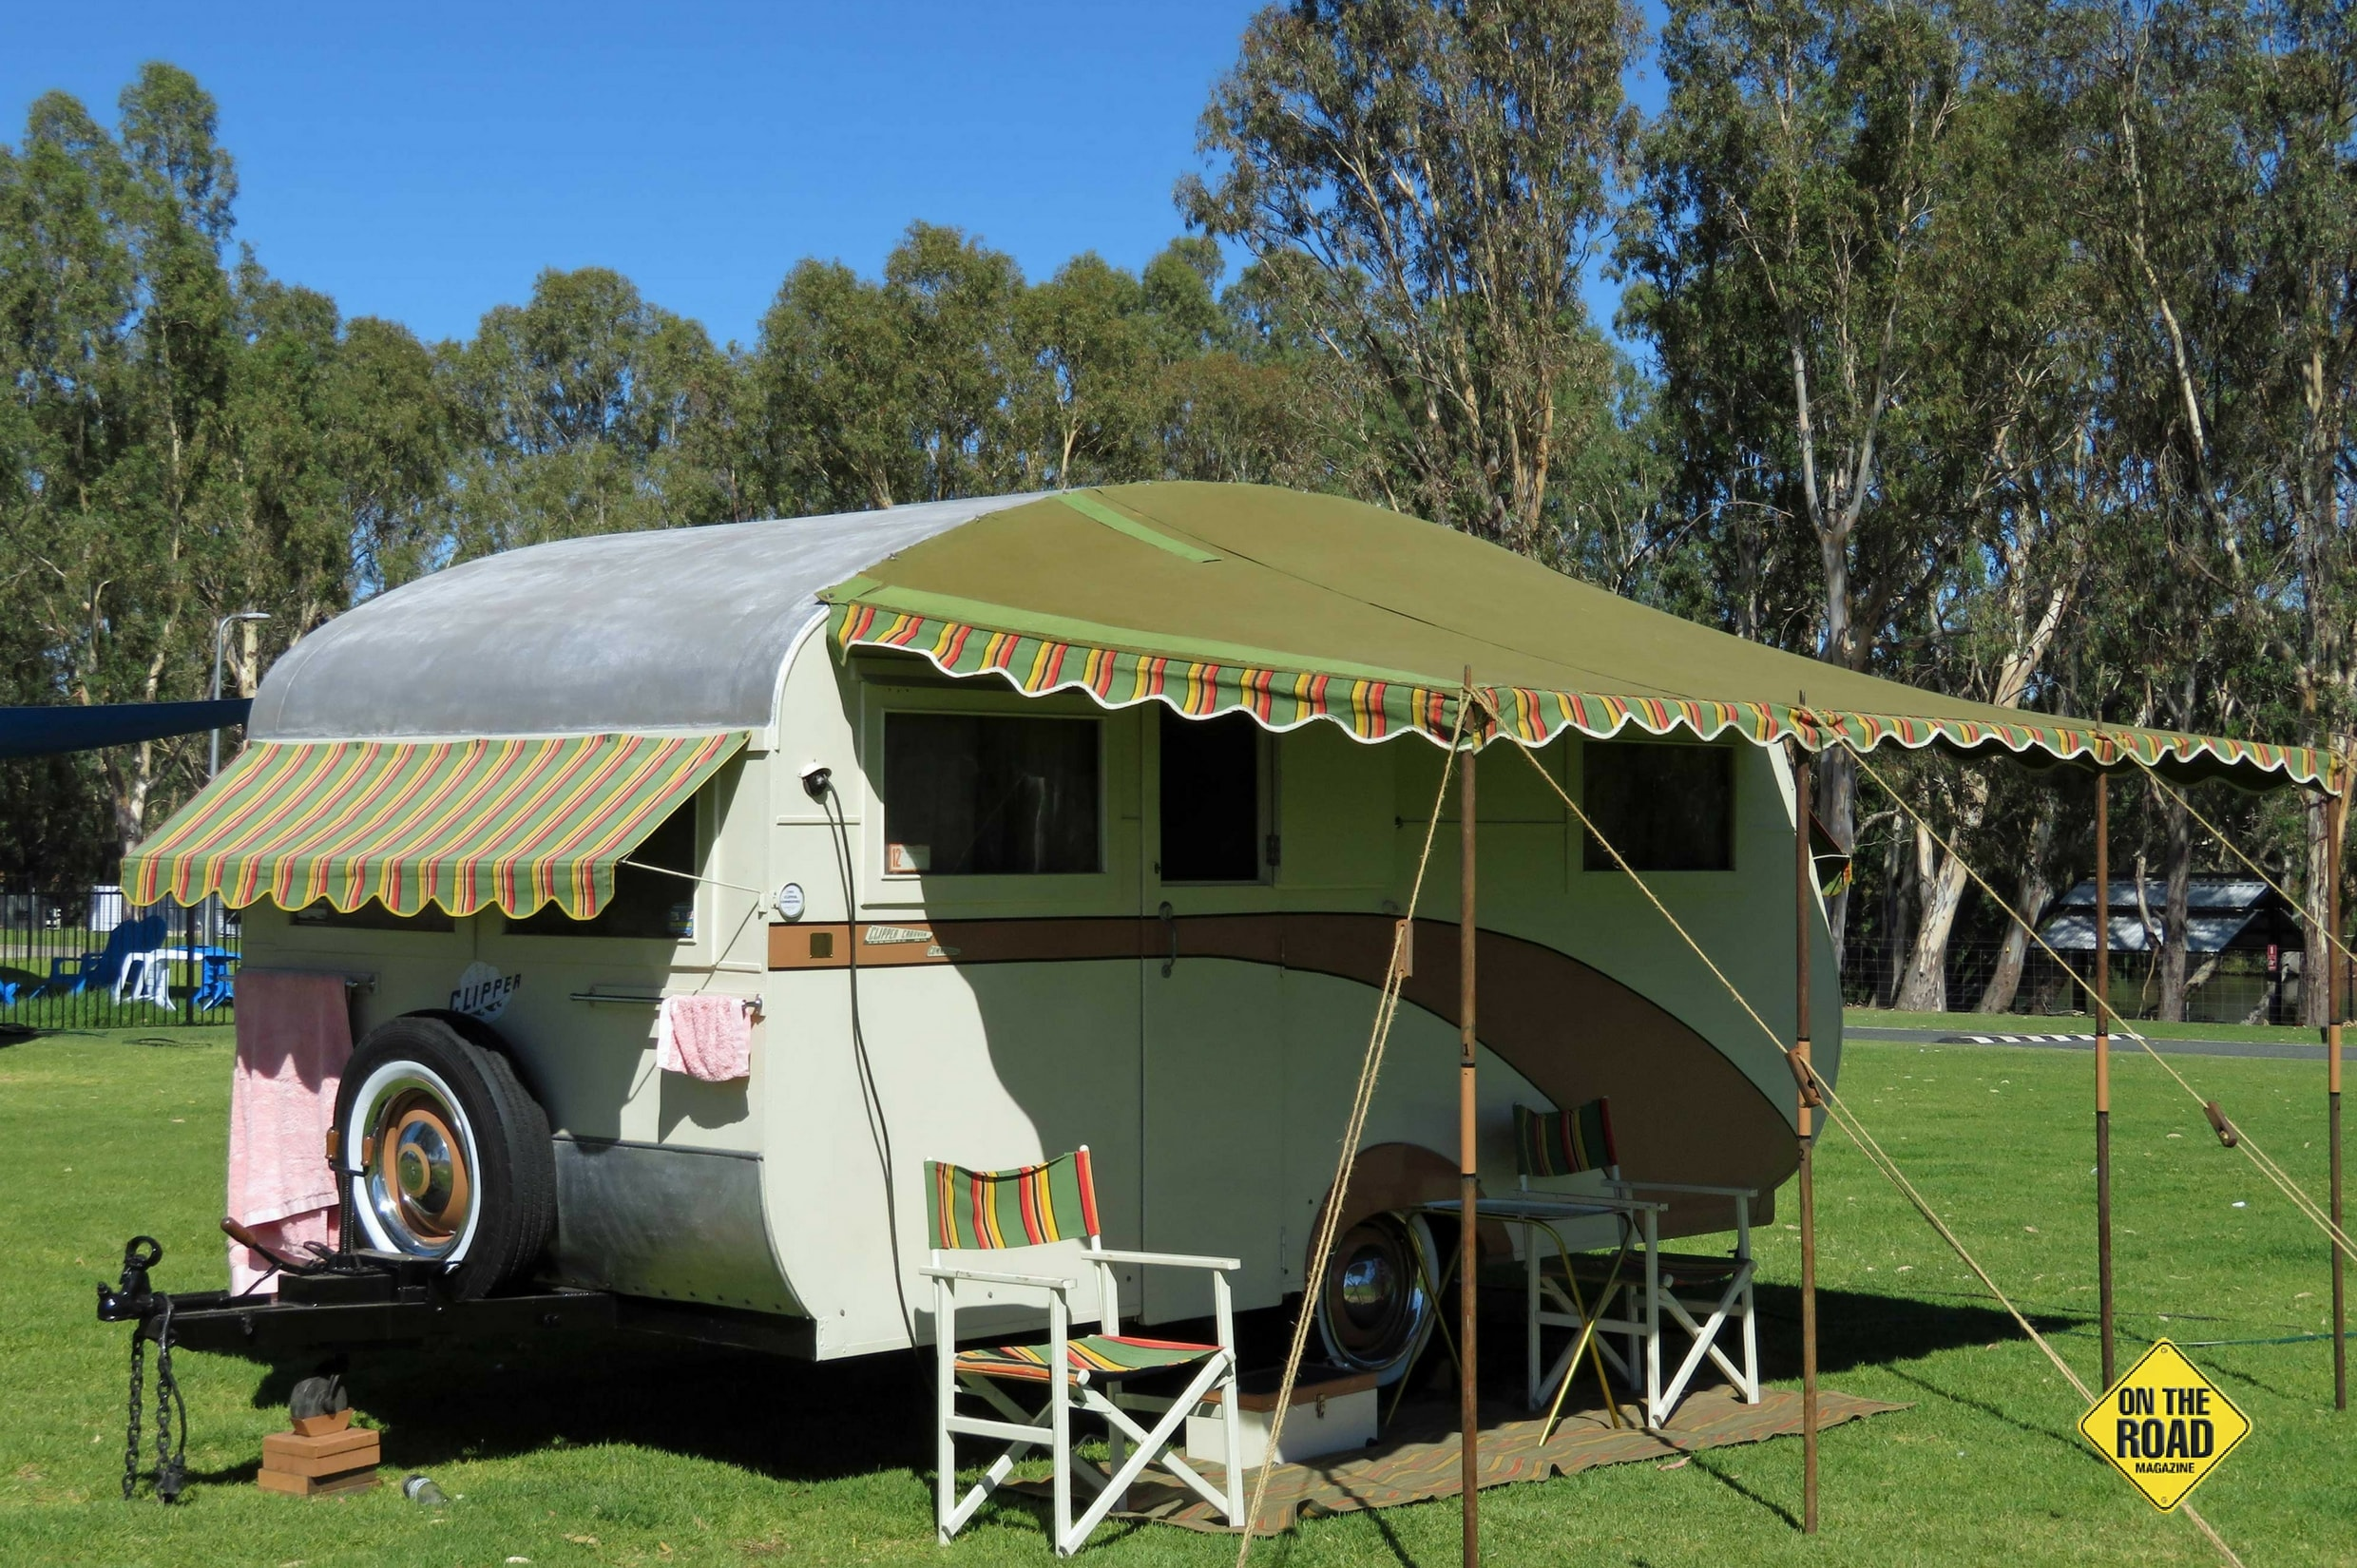 Don Tamblyn from South Australia found his 1953 Clipper caravan in a shed in Beaumont Vic. He explained that it was a big restoration project